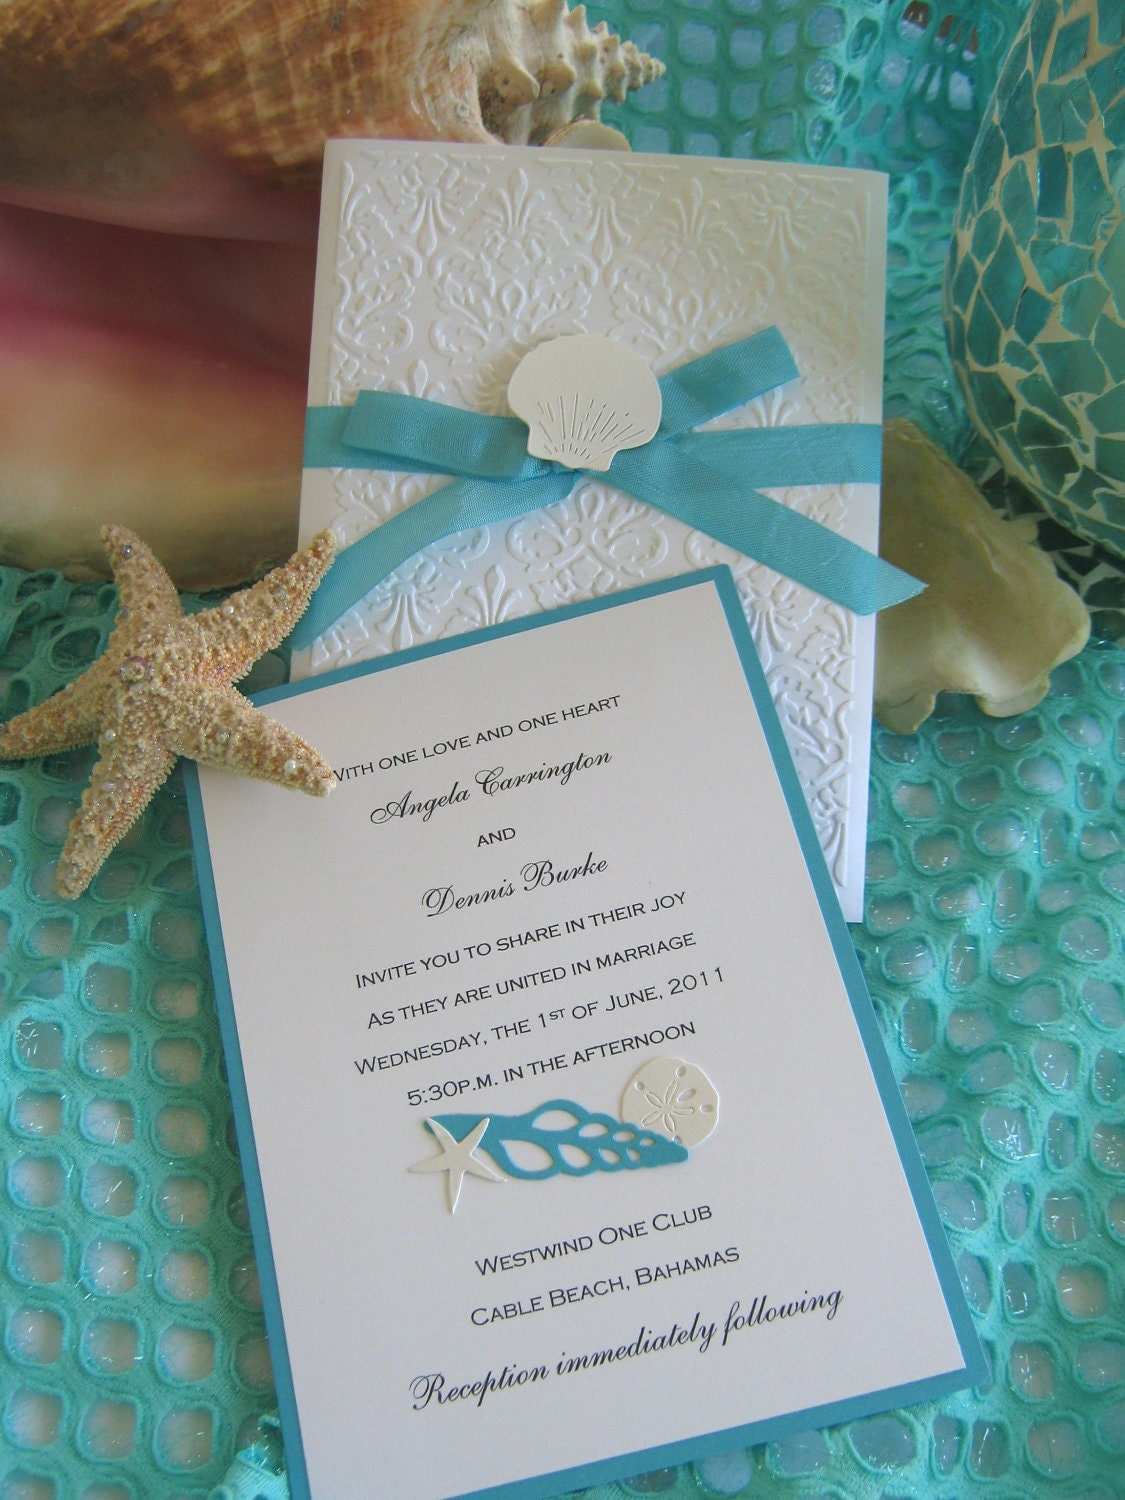 Seashell Wedding Invitations and get inspiration to create nice invitation ideas